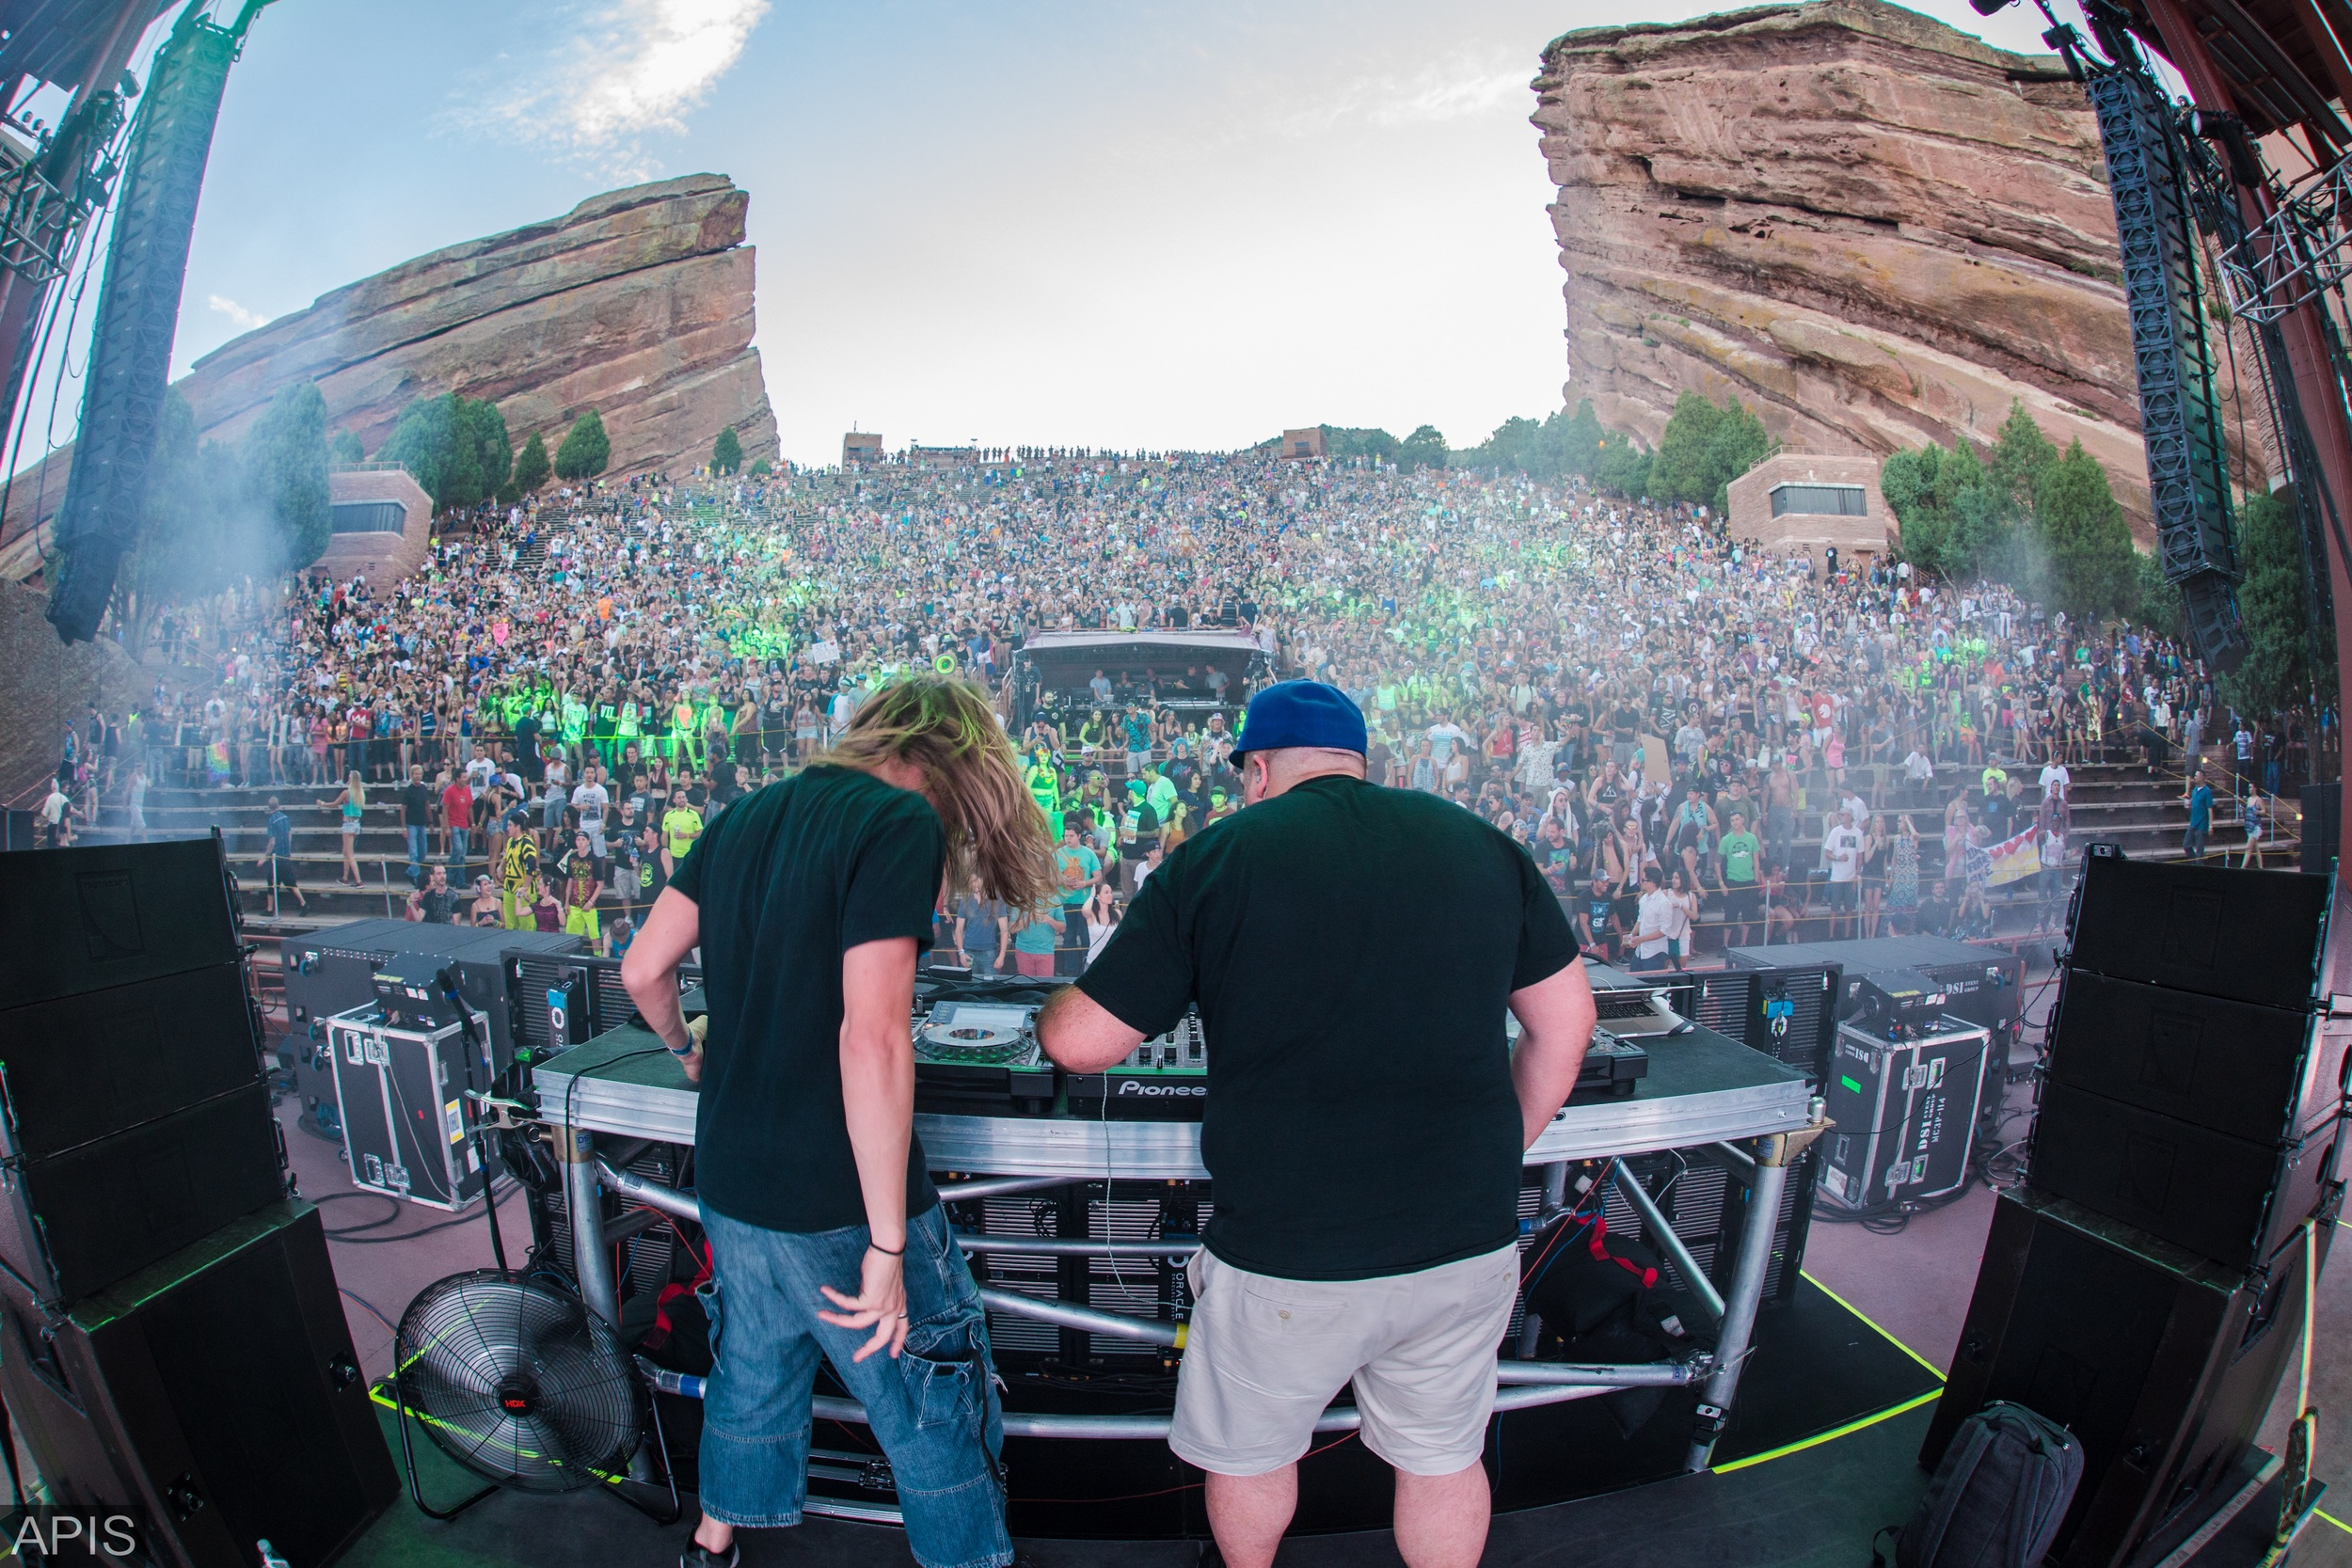 Pegboard Nerds at Red Rocks